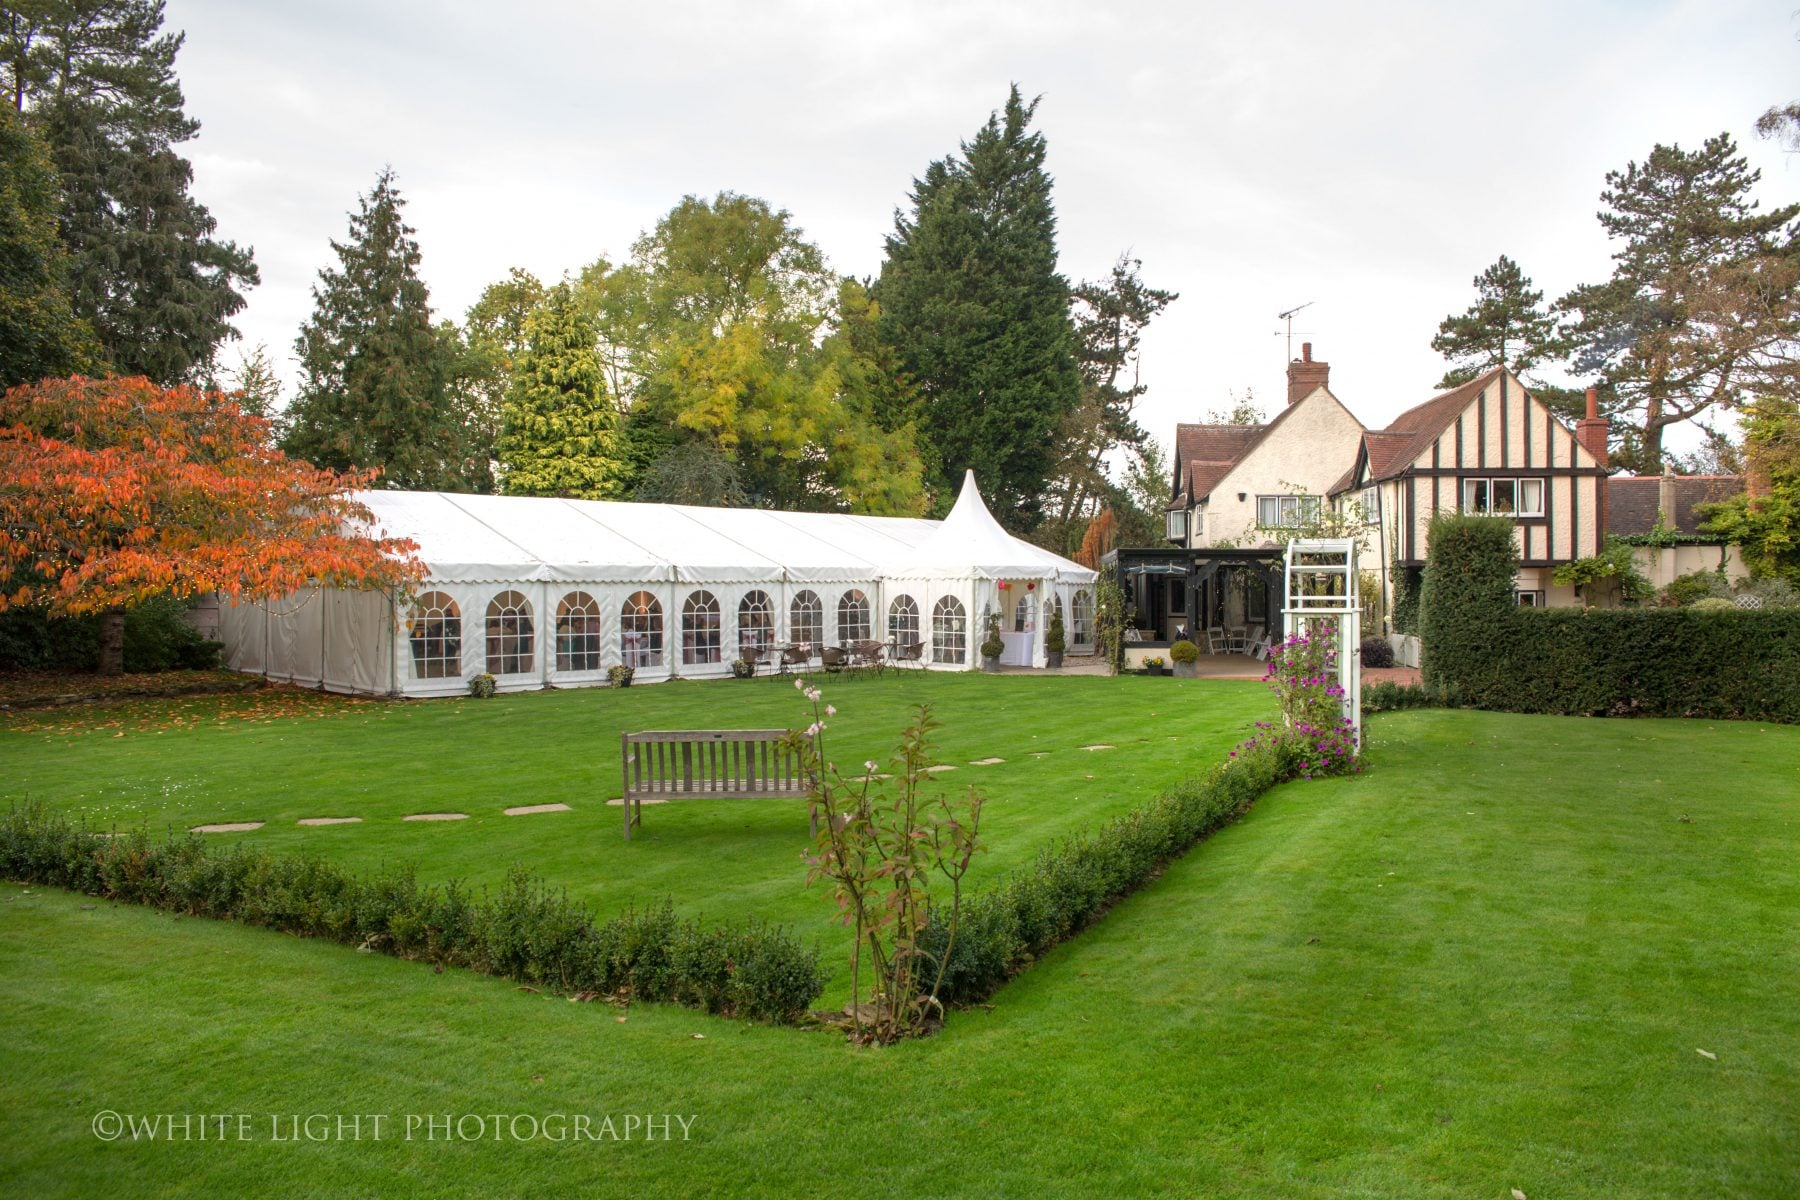 Transition from marquee to orangery